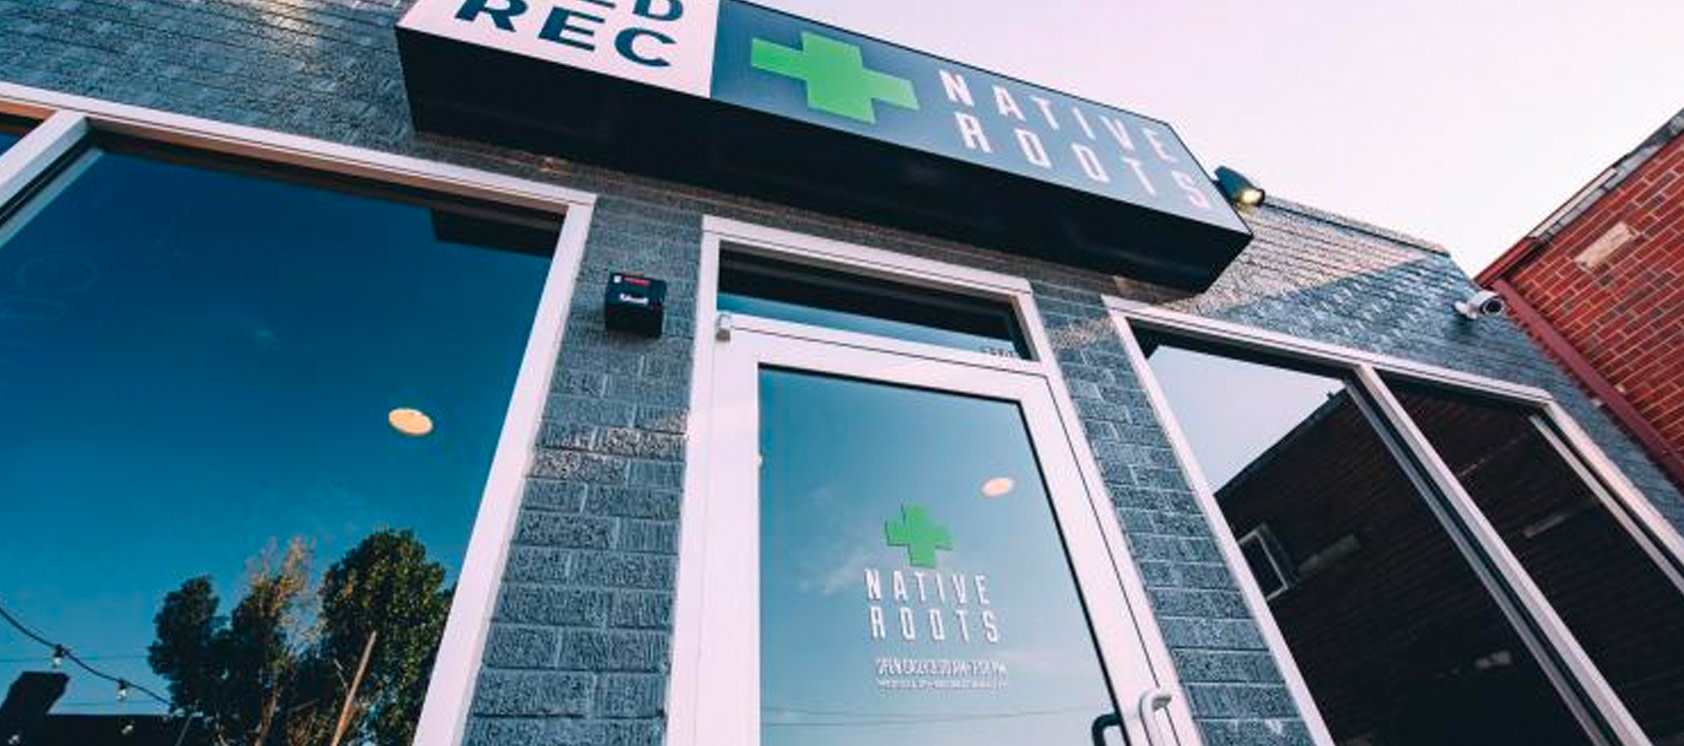 Native Roots Cannabis Company Highlands Location Downtown Denver